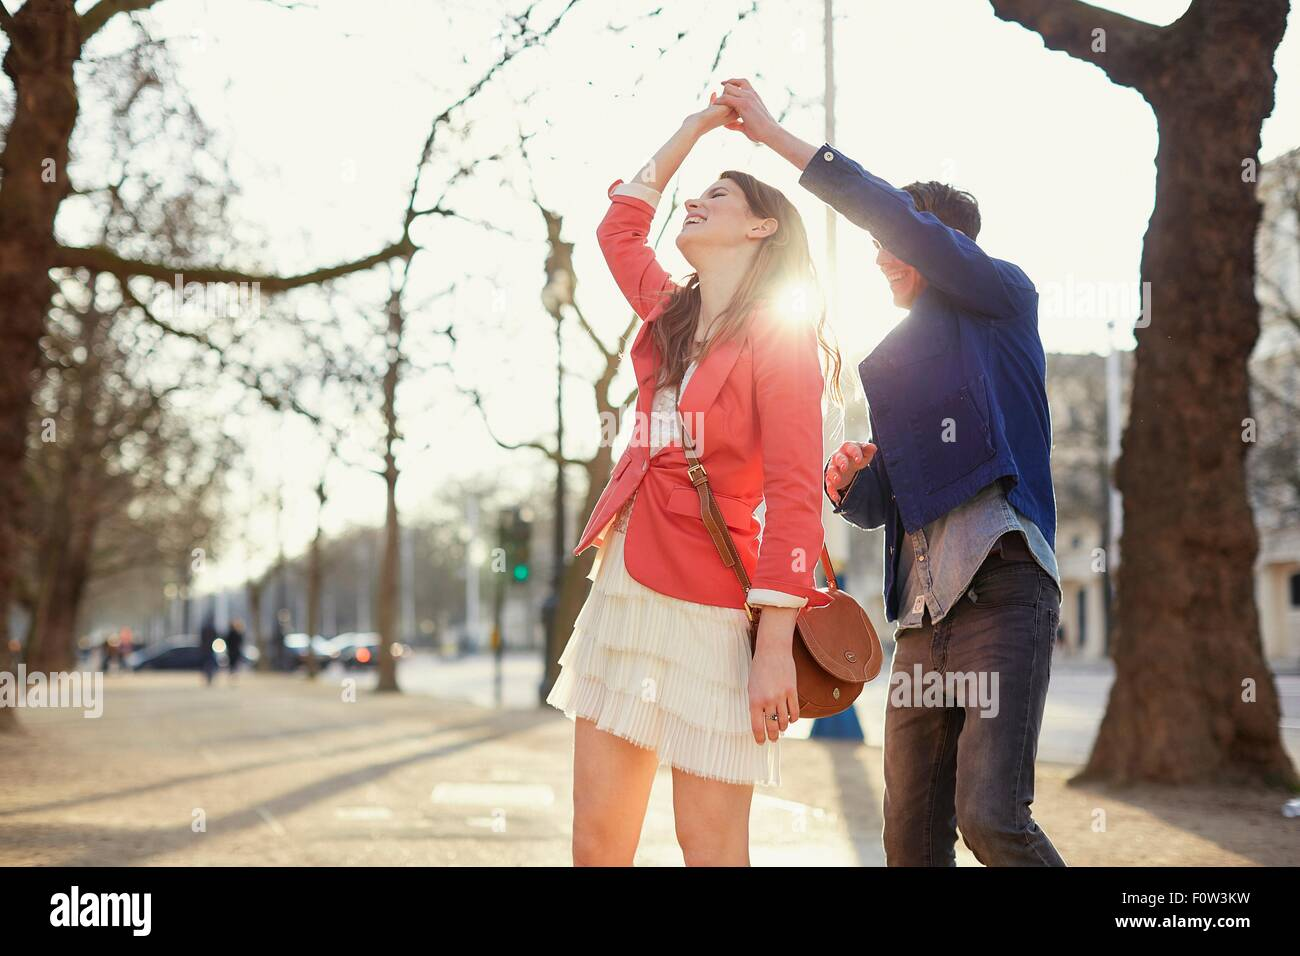 Romantic couple twirling in sunlit park, London, UK - Stock Image